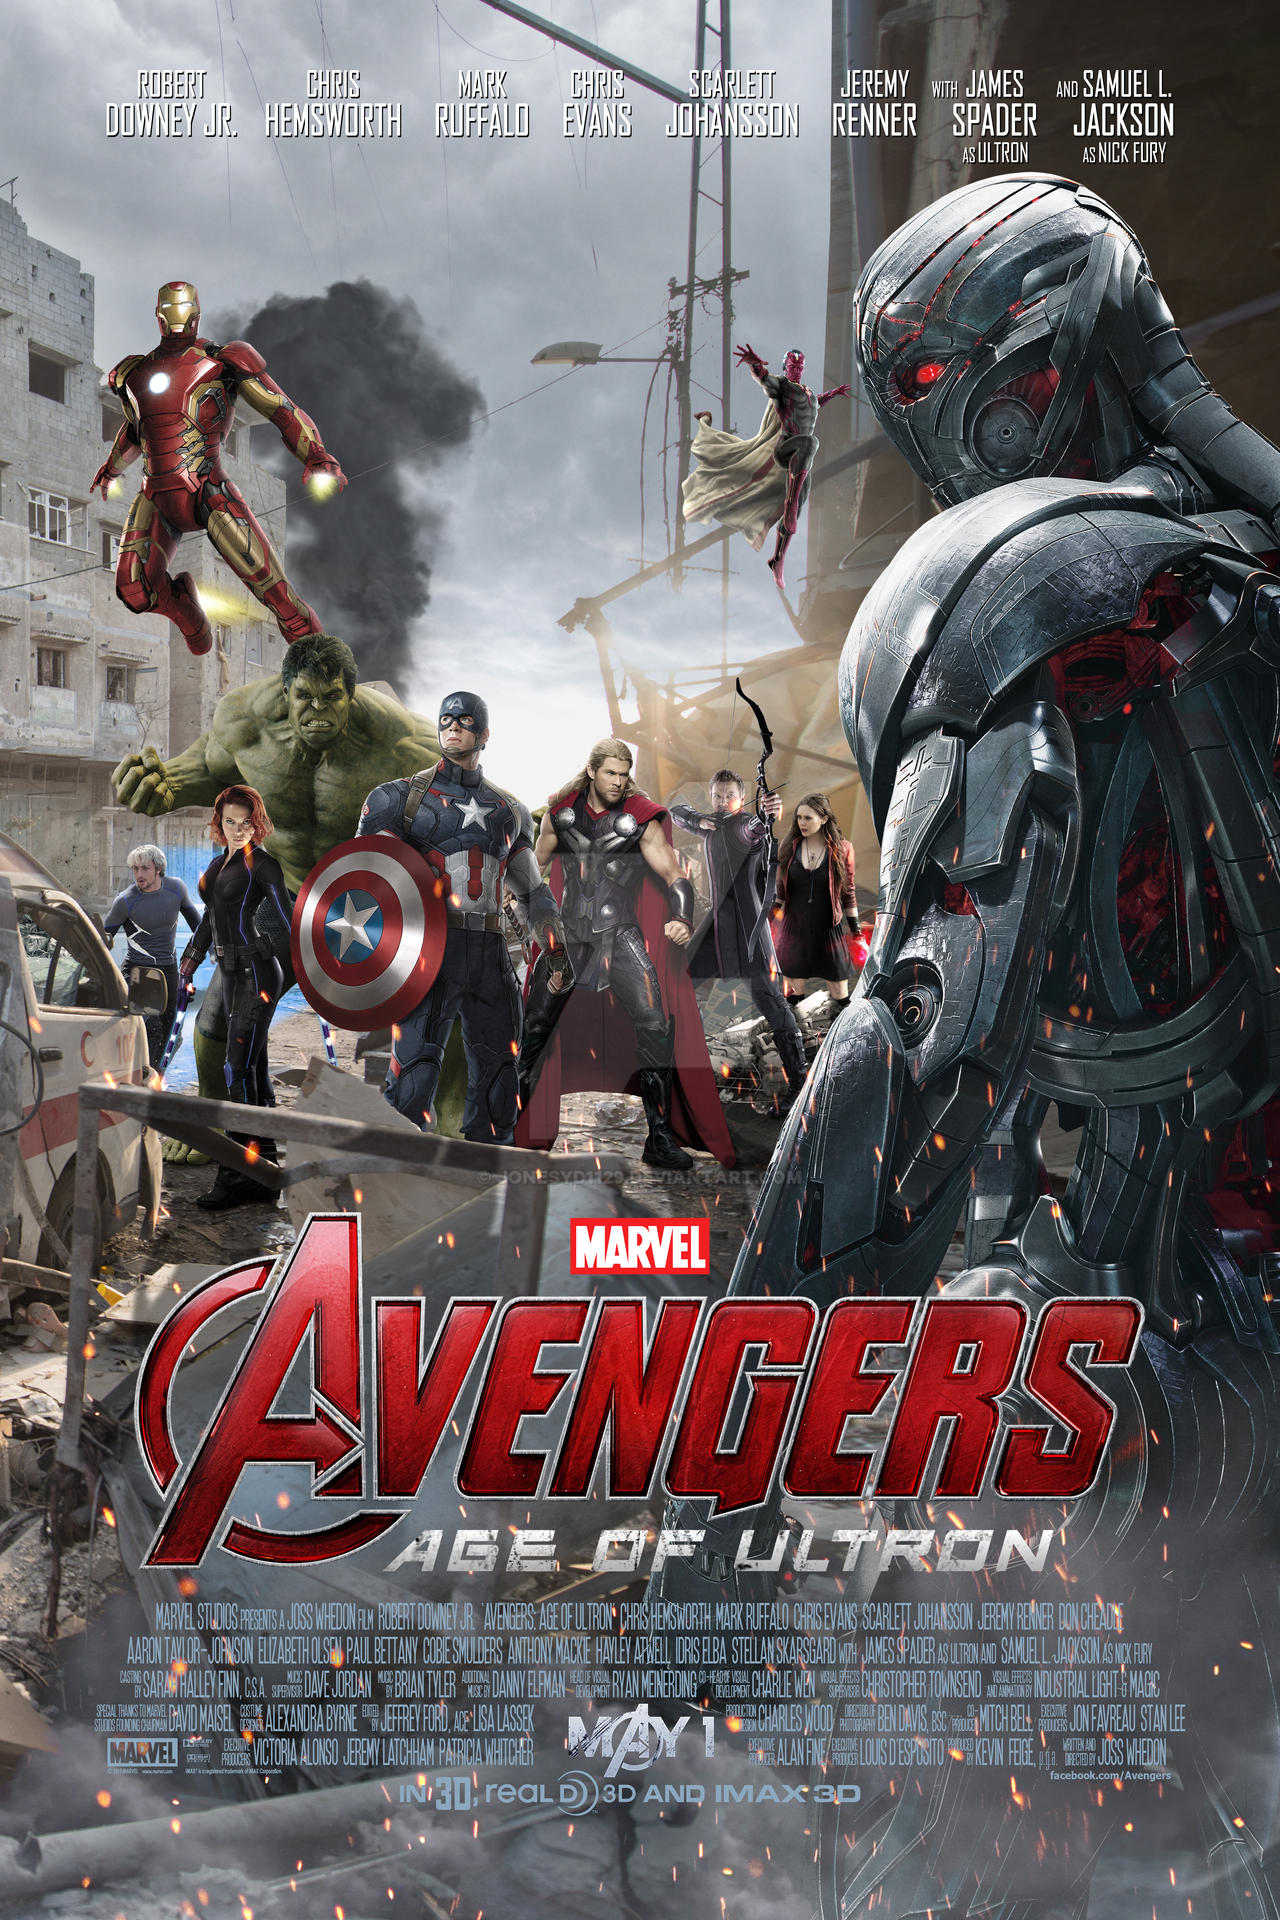 Avengers Age Of Ultron By Iloegbunam On Deviantart: Avengers: Age Of Ultron Poster 1 By Jonesyd1129 On DeviantArt